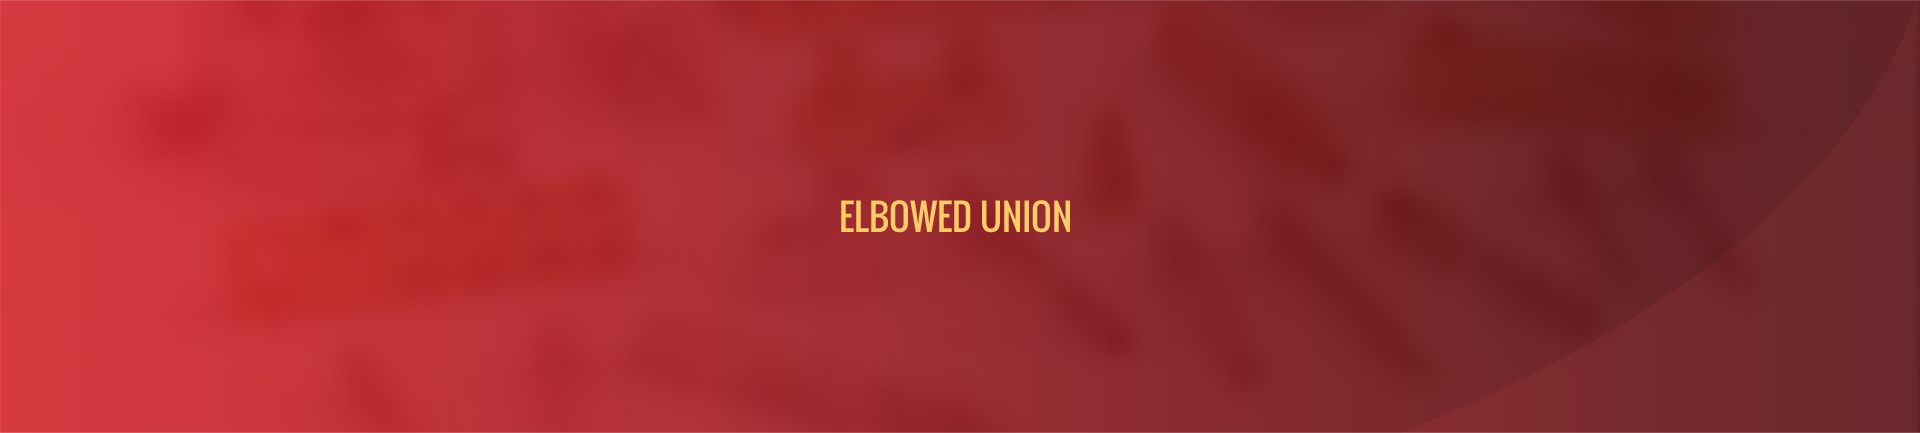 elbowed_union-banner